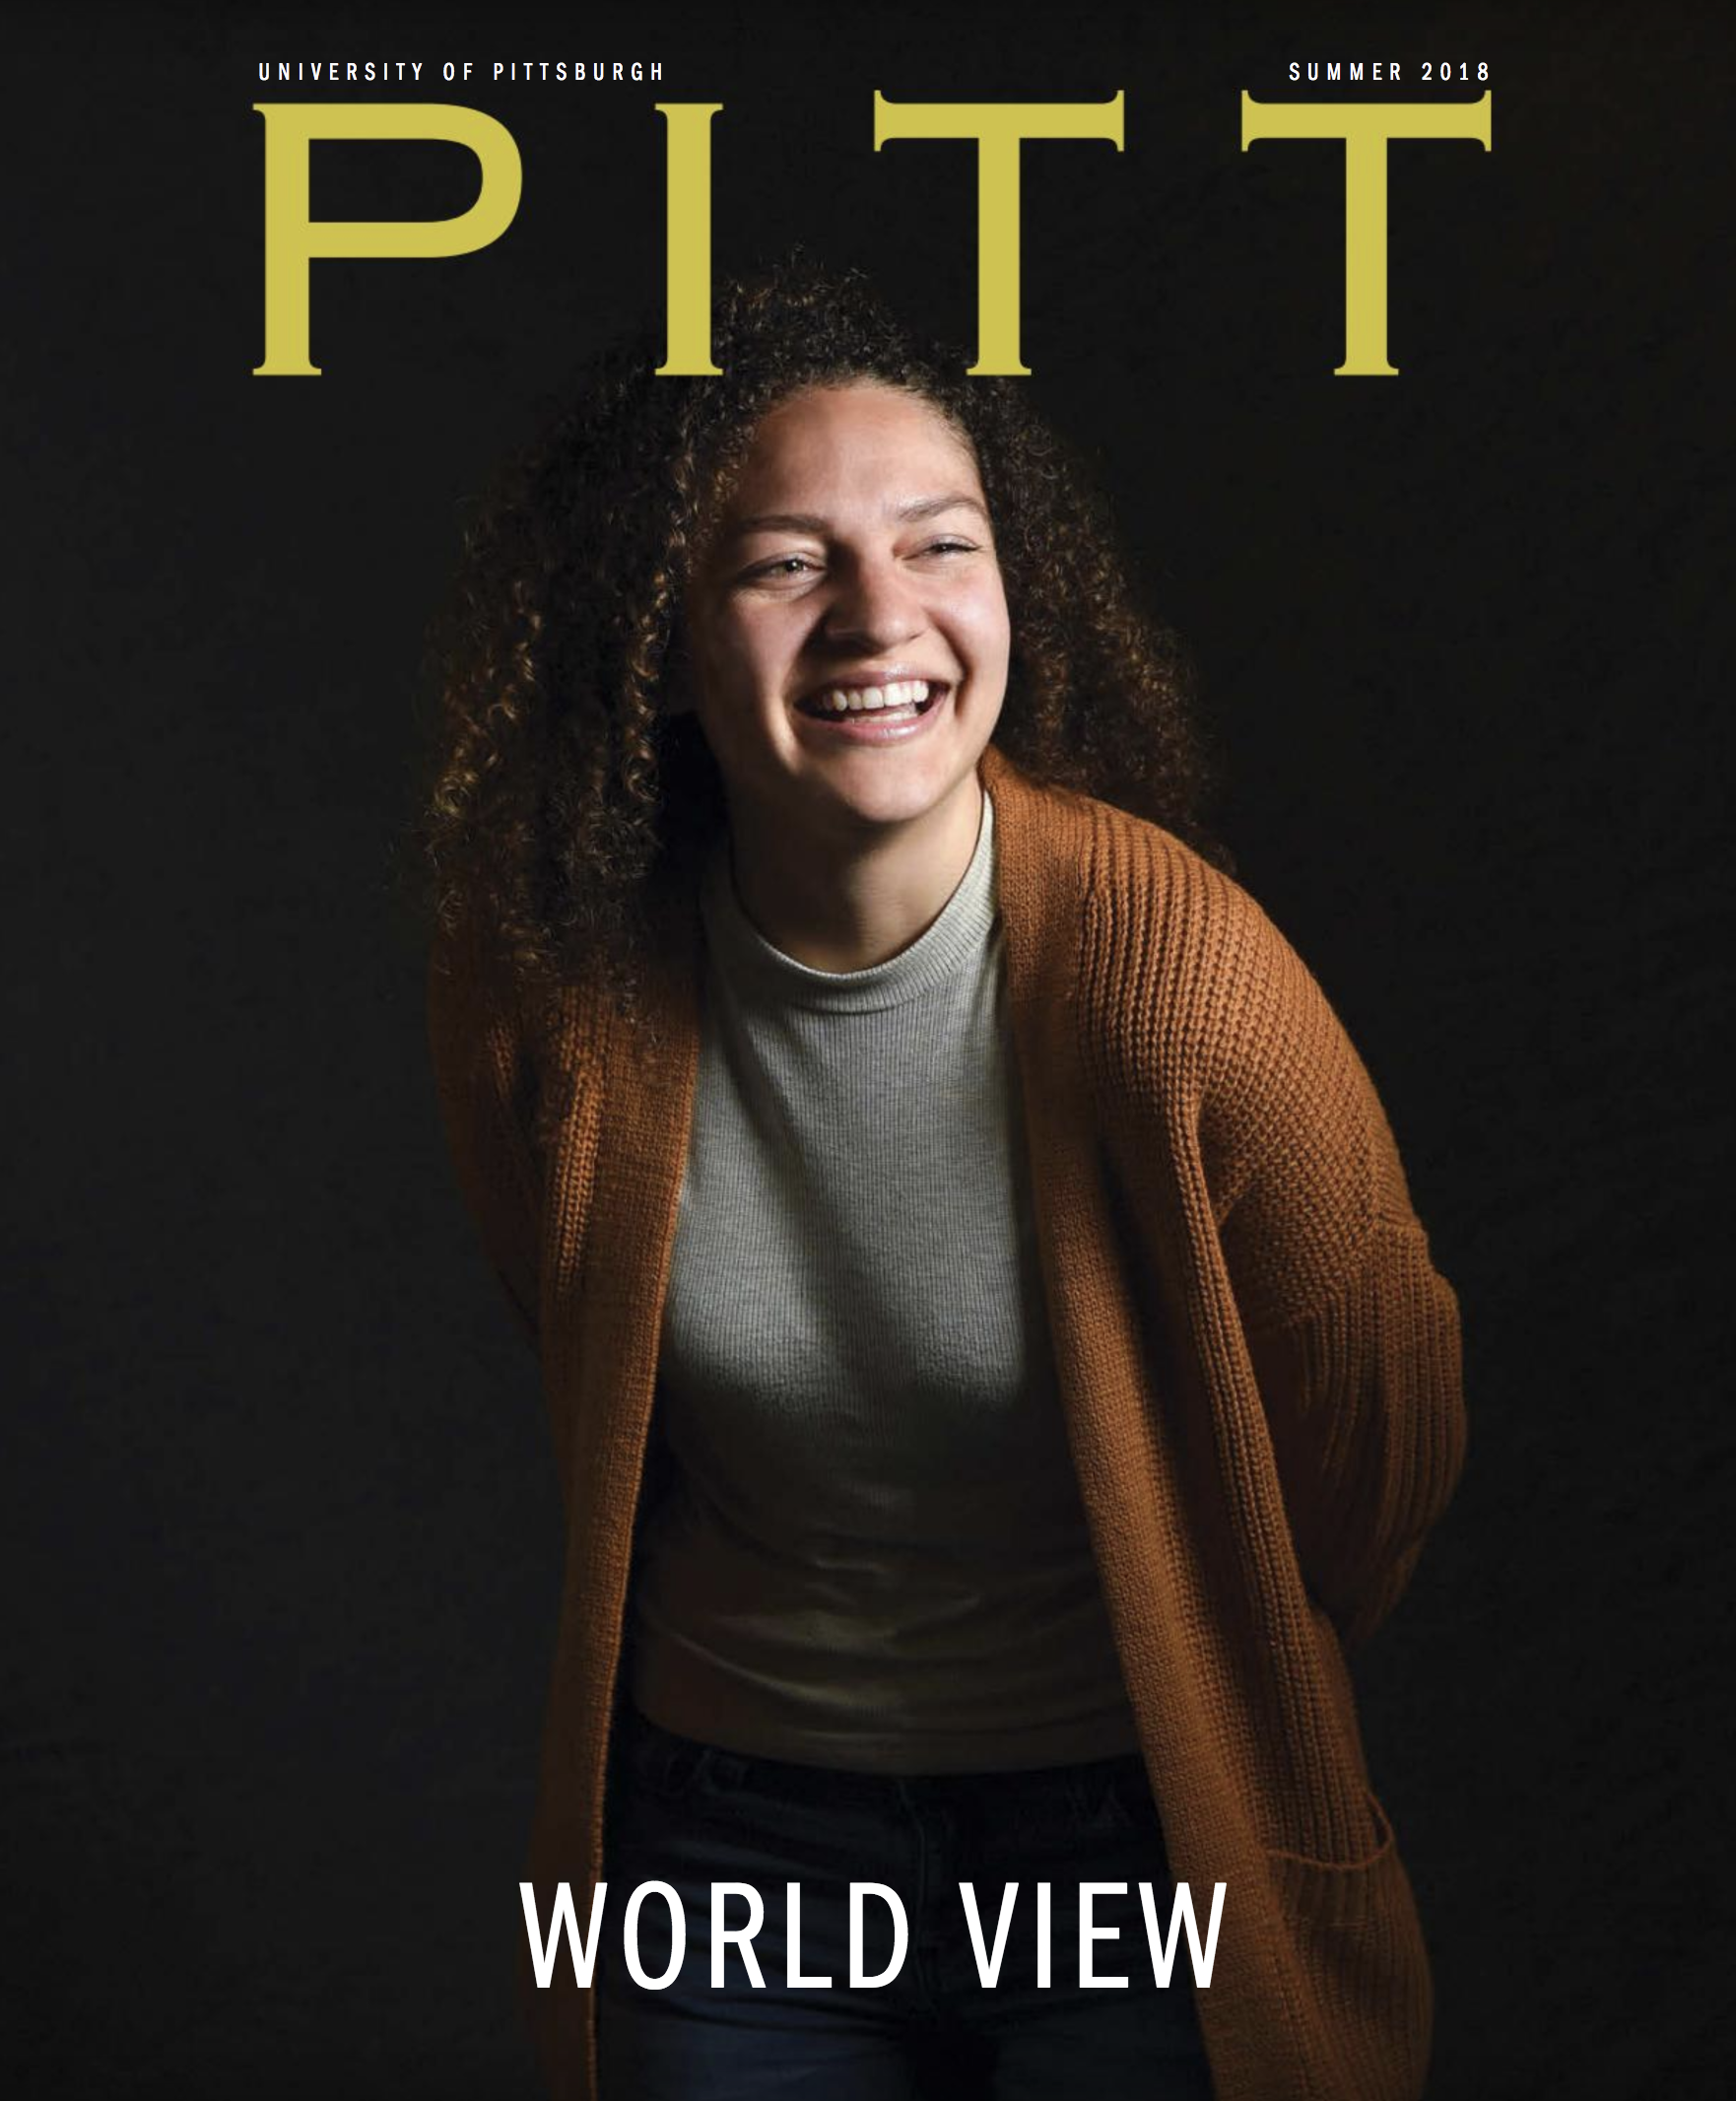 cover image of Pitt Magazine summer 2018 issue